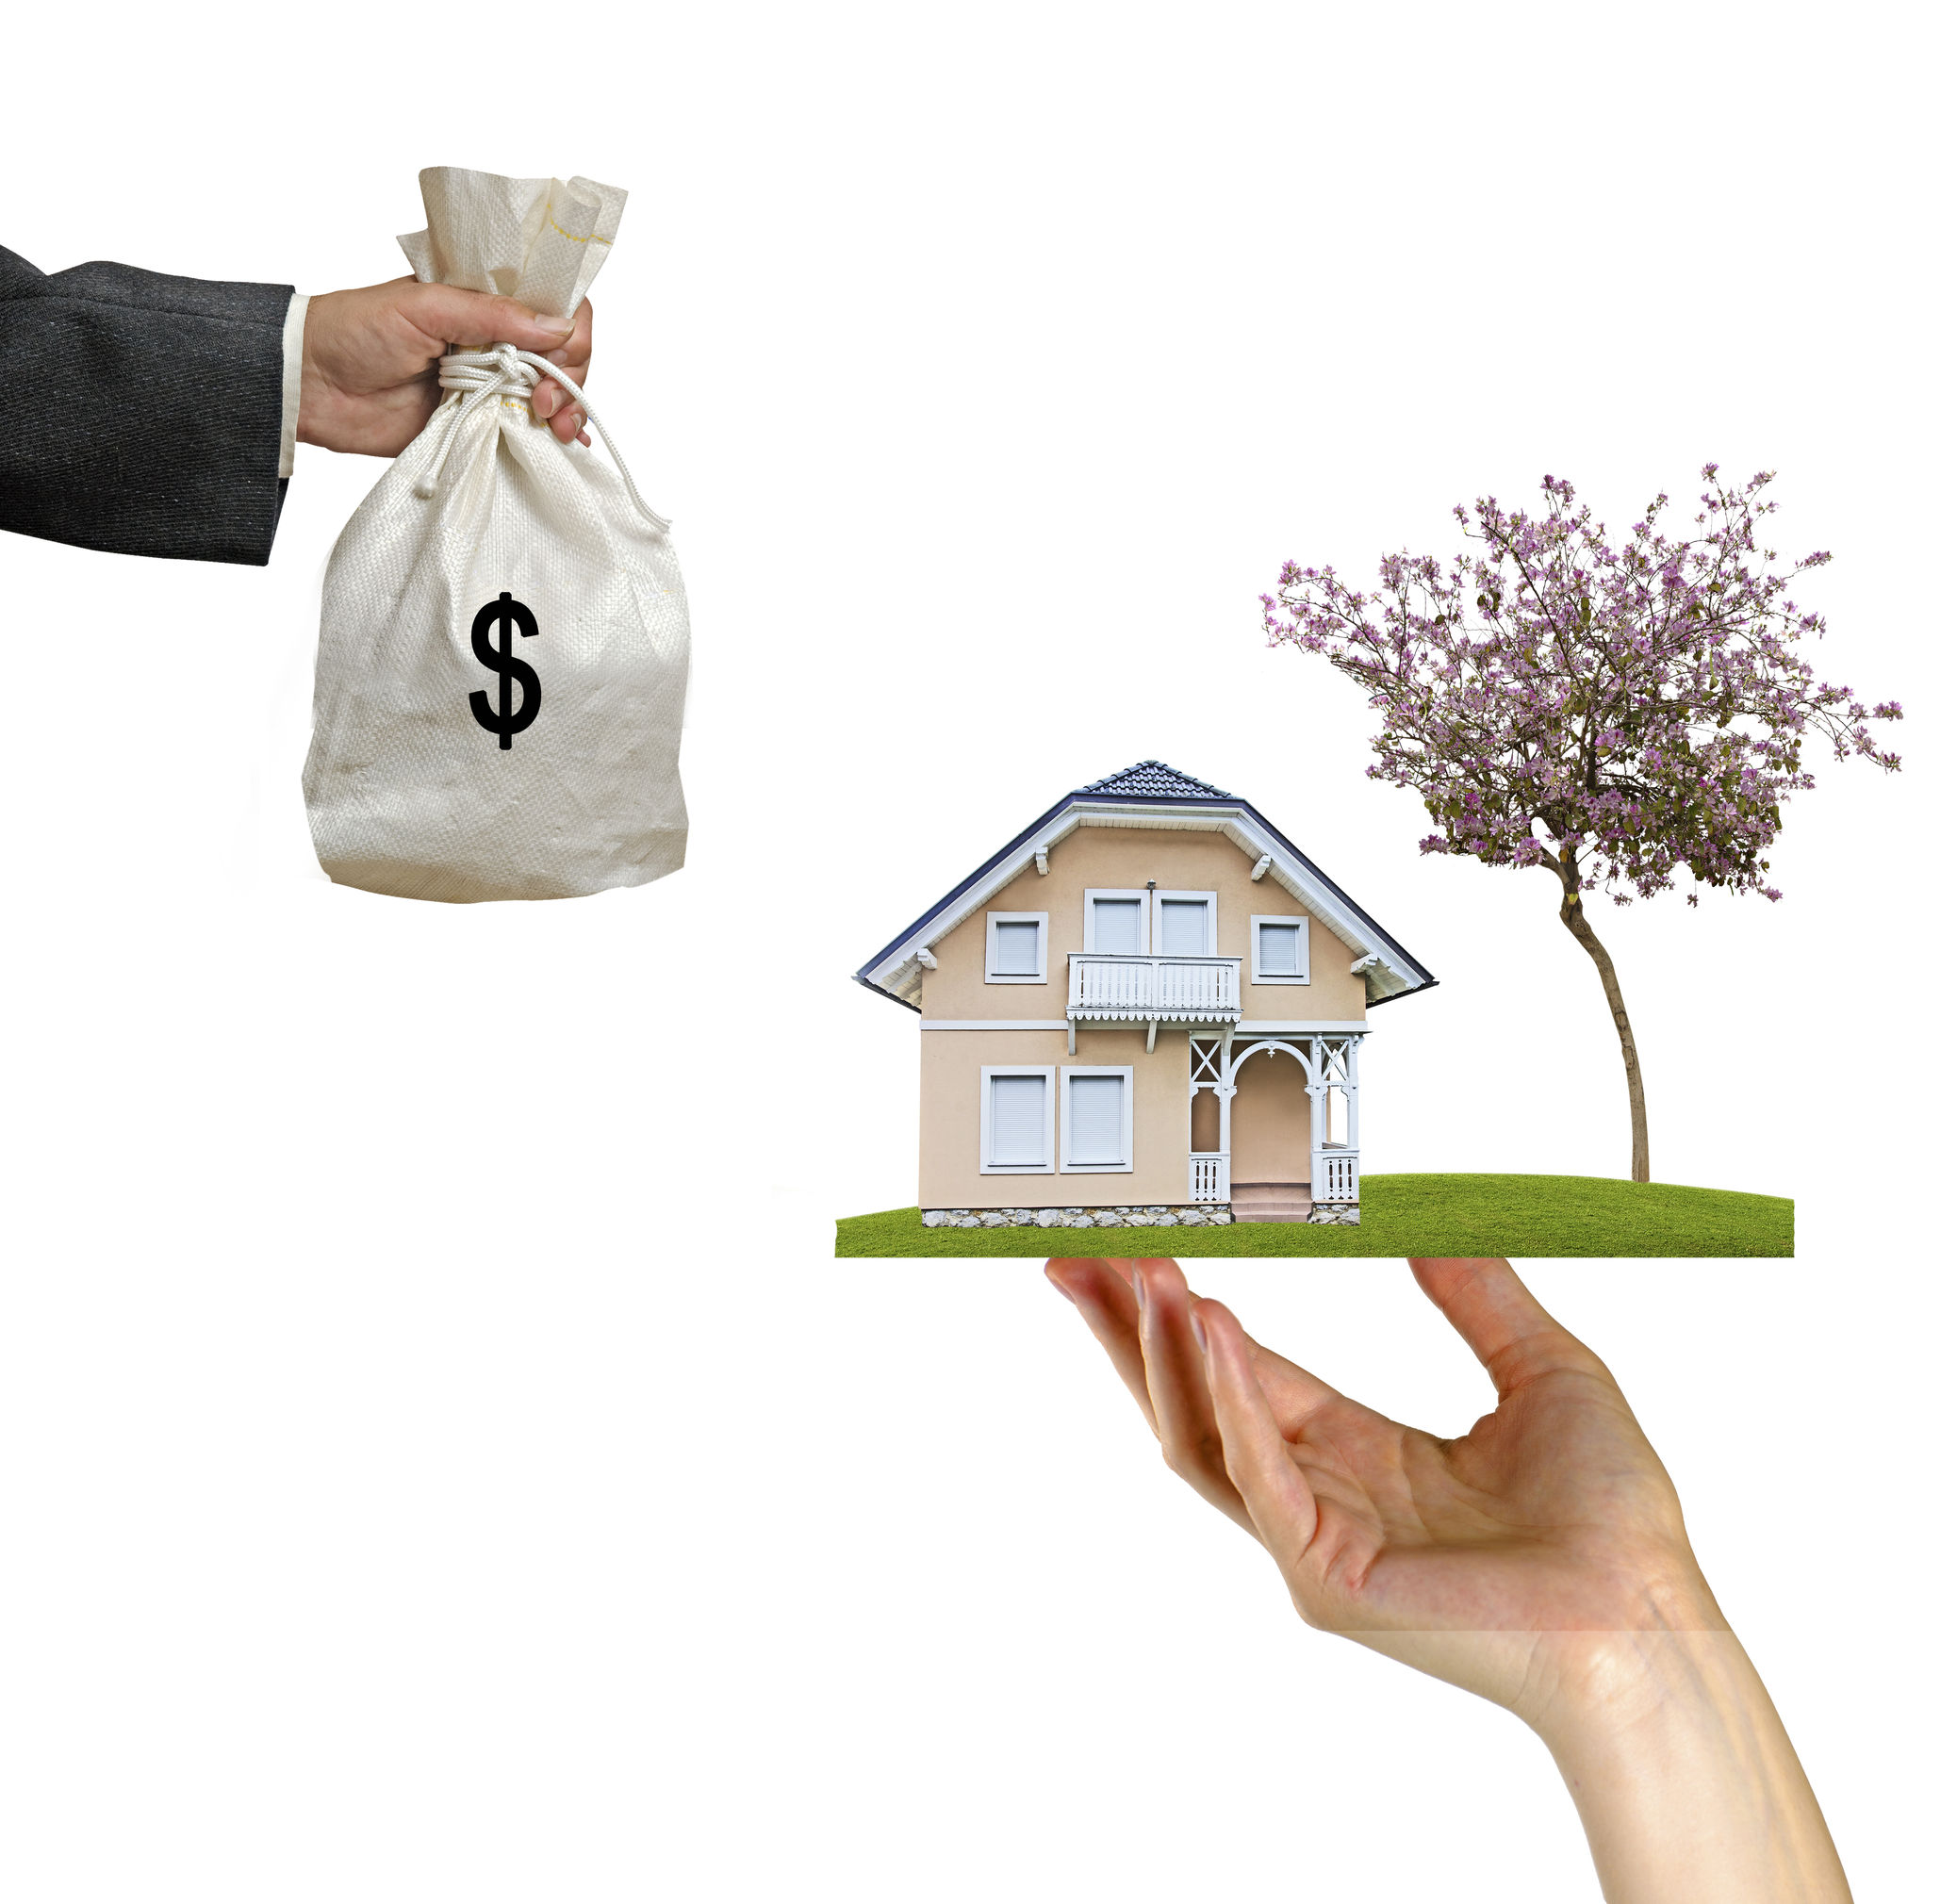 37033212 - selling of house